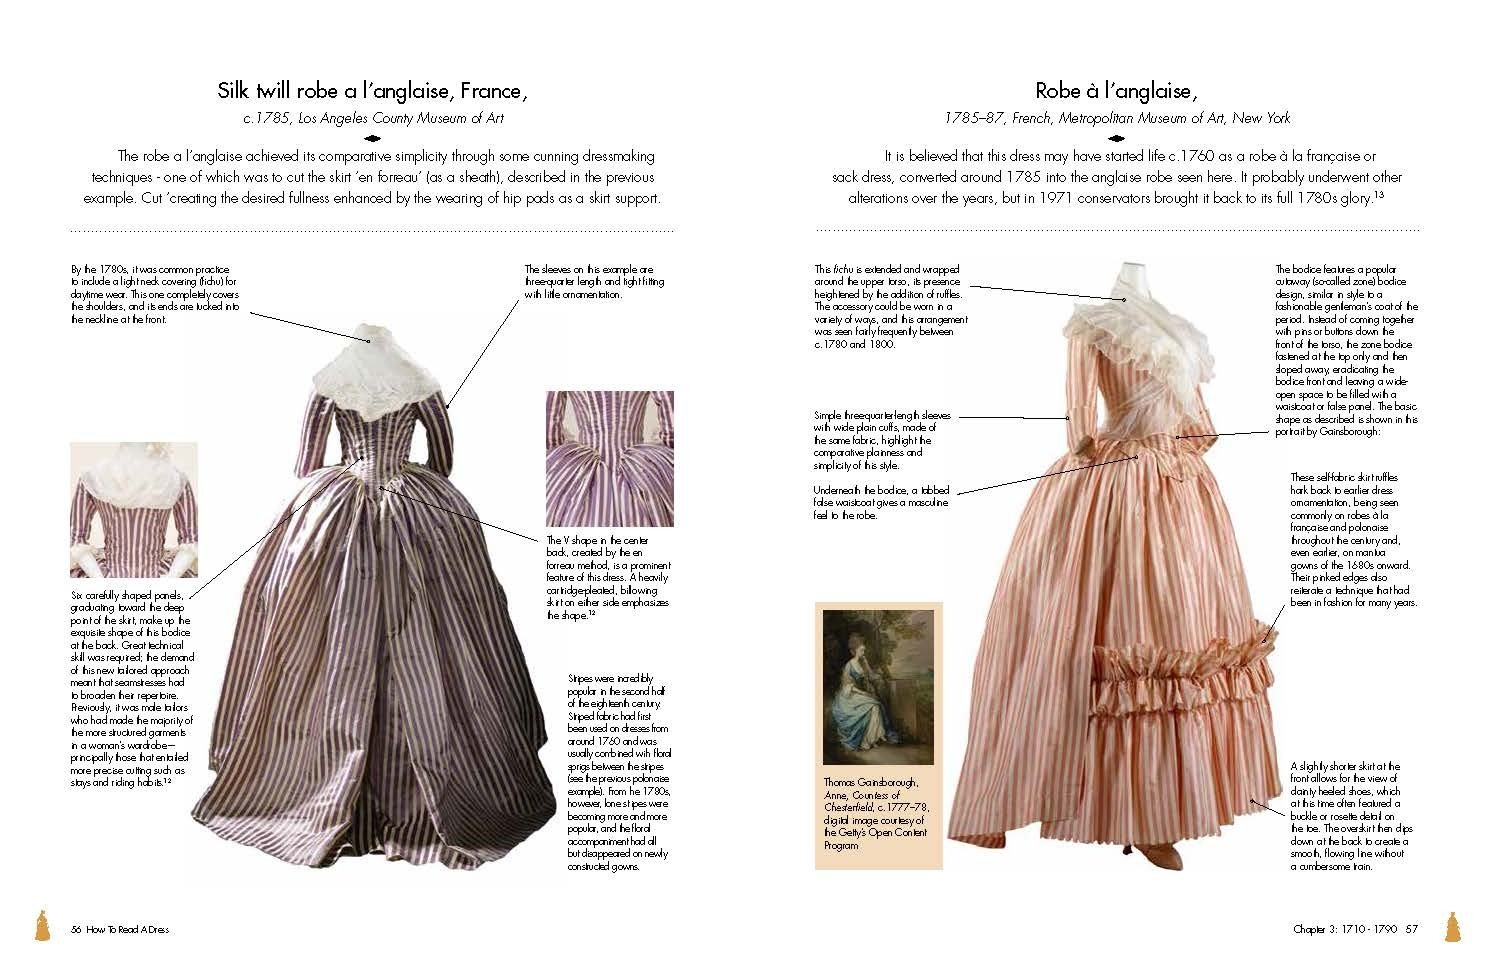 How to Read a Dress: A Guide to Changing Fashion from the 16th to the 20th  Century: Lydia Edwards: 9781472533272: Amazon.com: Books